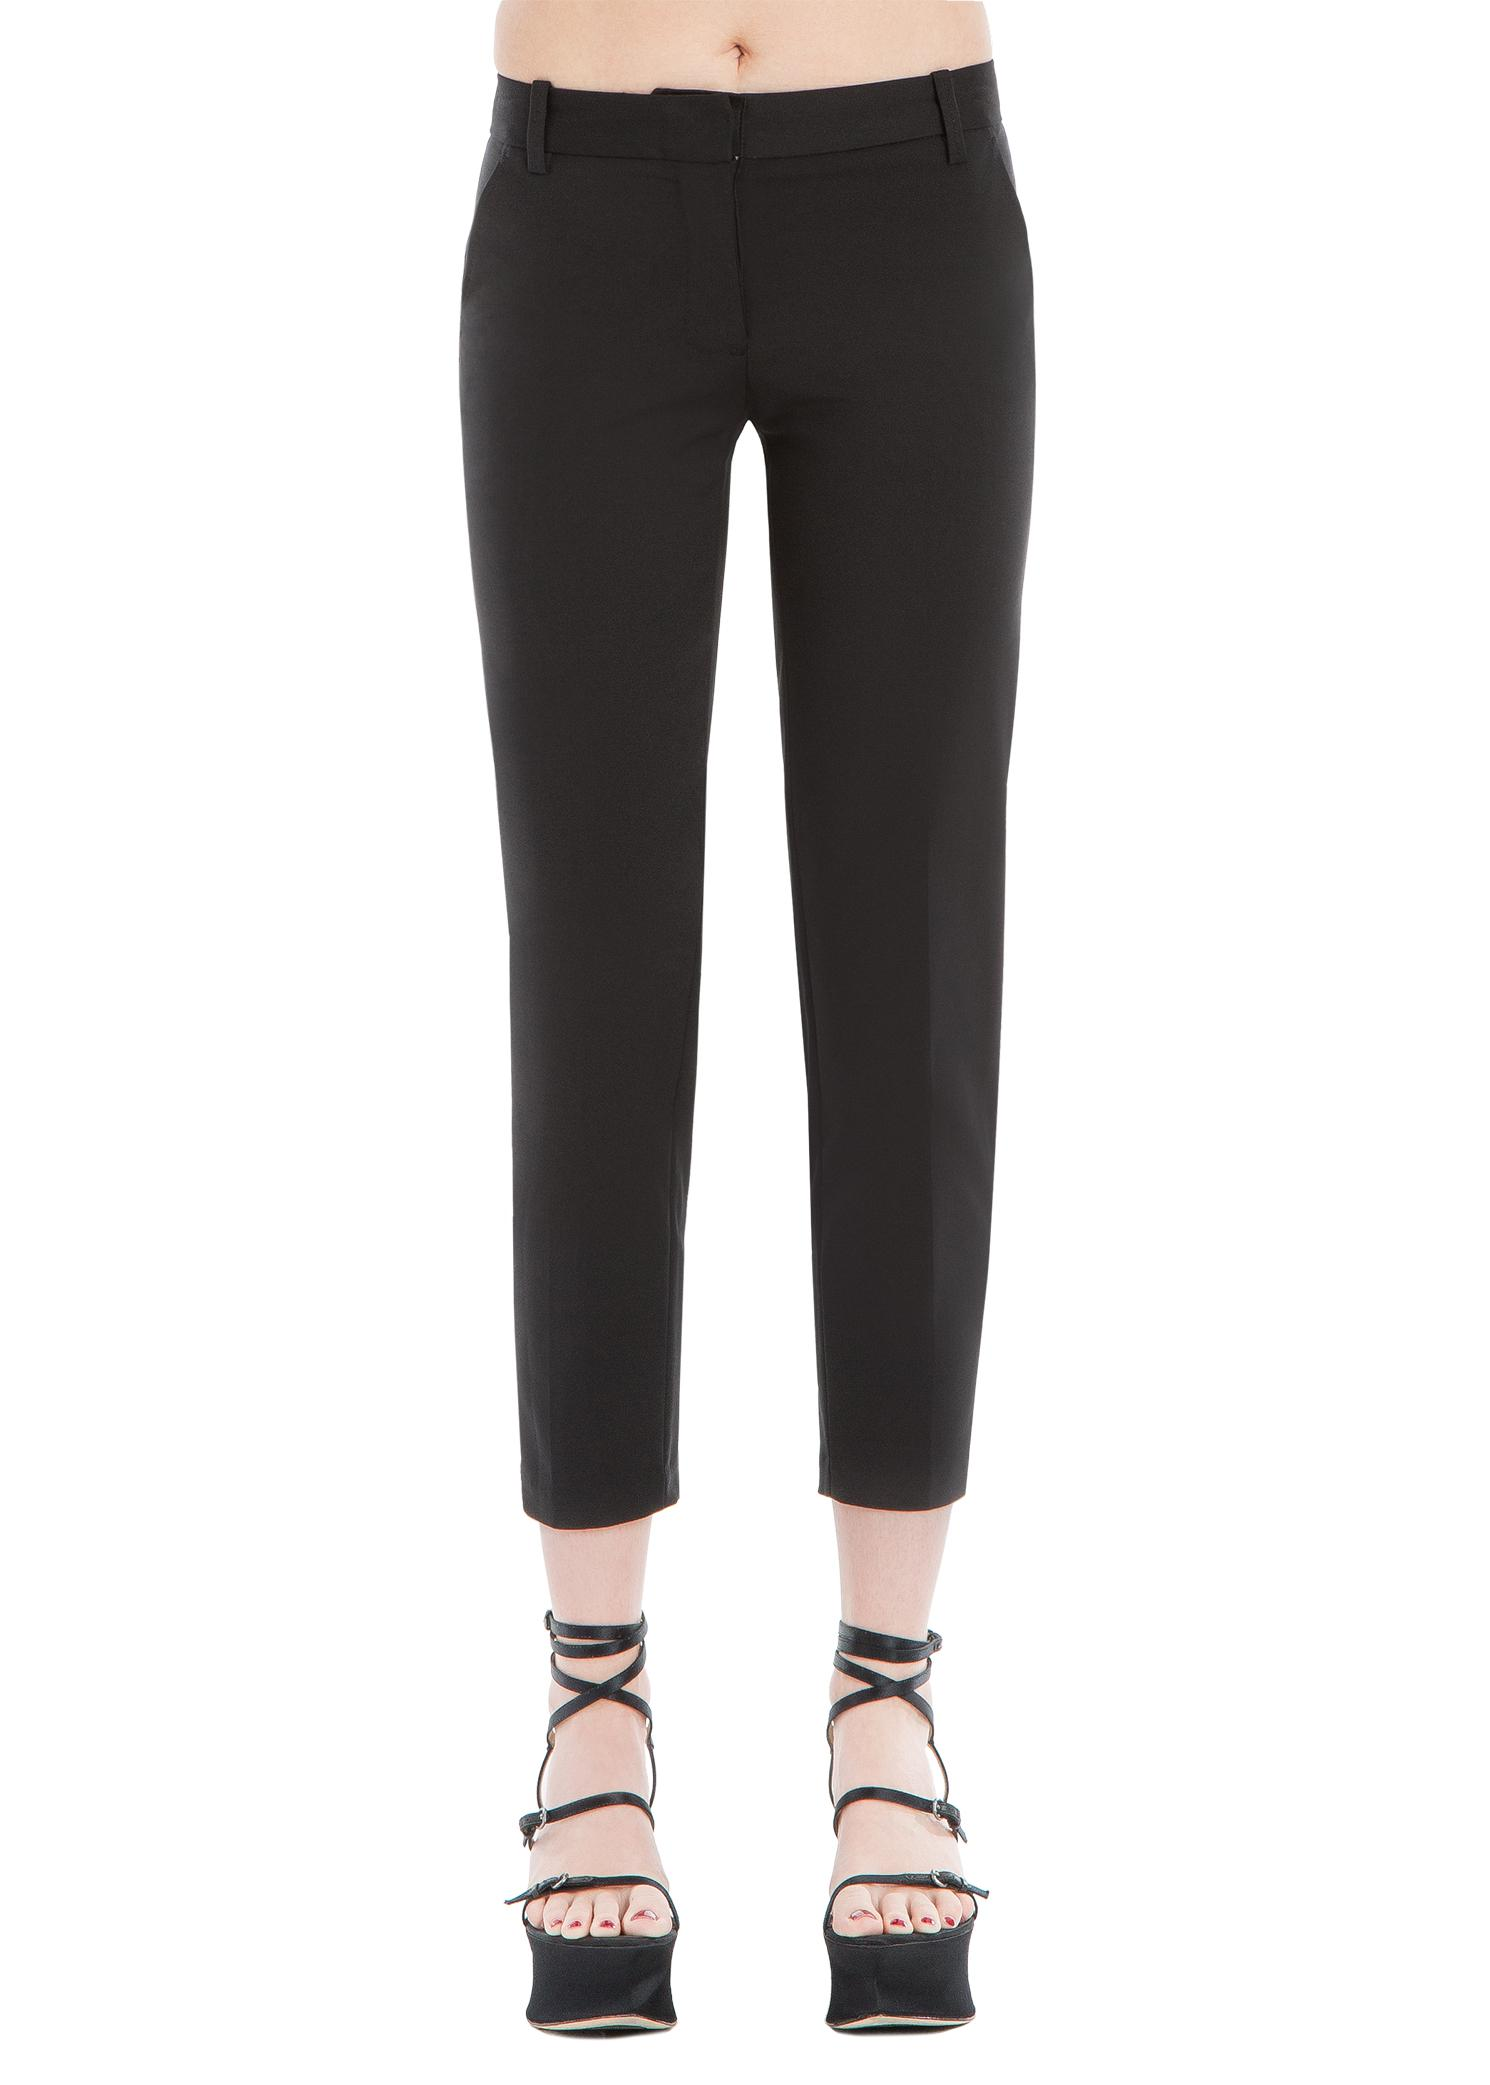 Leon Max Bonded Jersey Trousers Big Discount Cheap Online Buy Cheap Exclusive Outlet Top Quality 5nrEVbCG